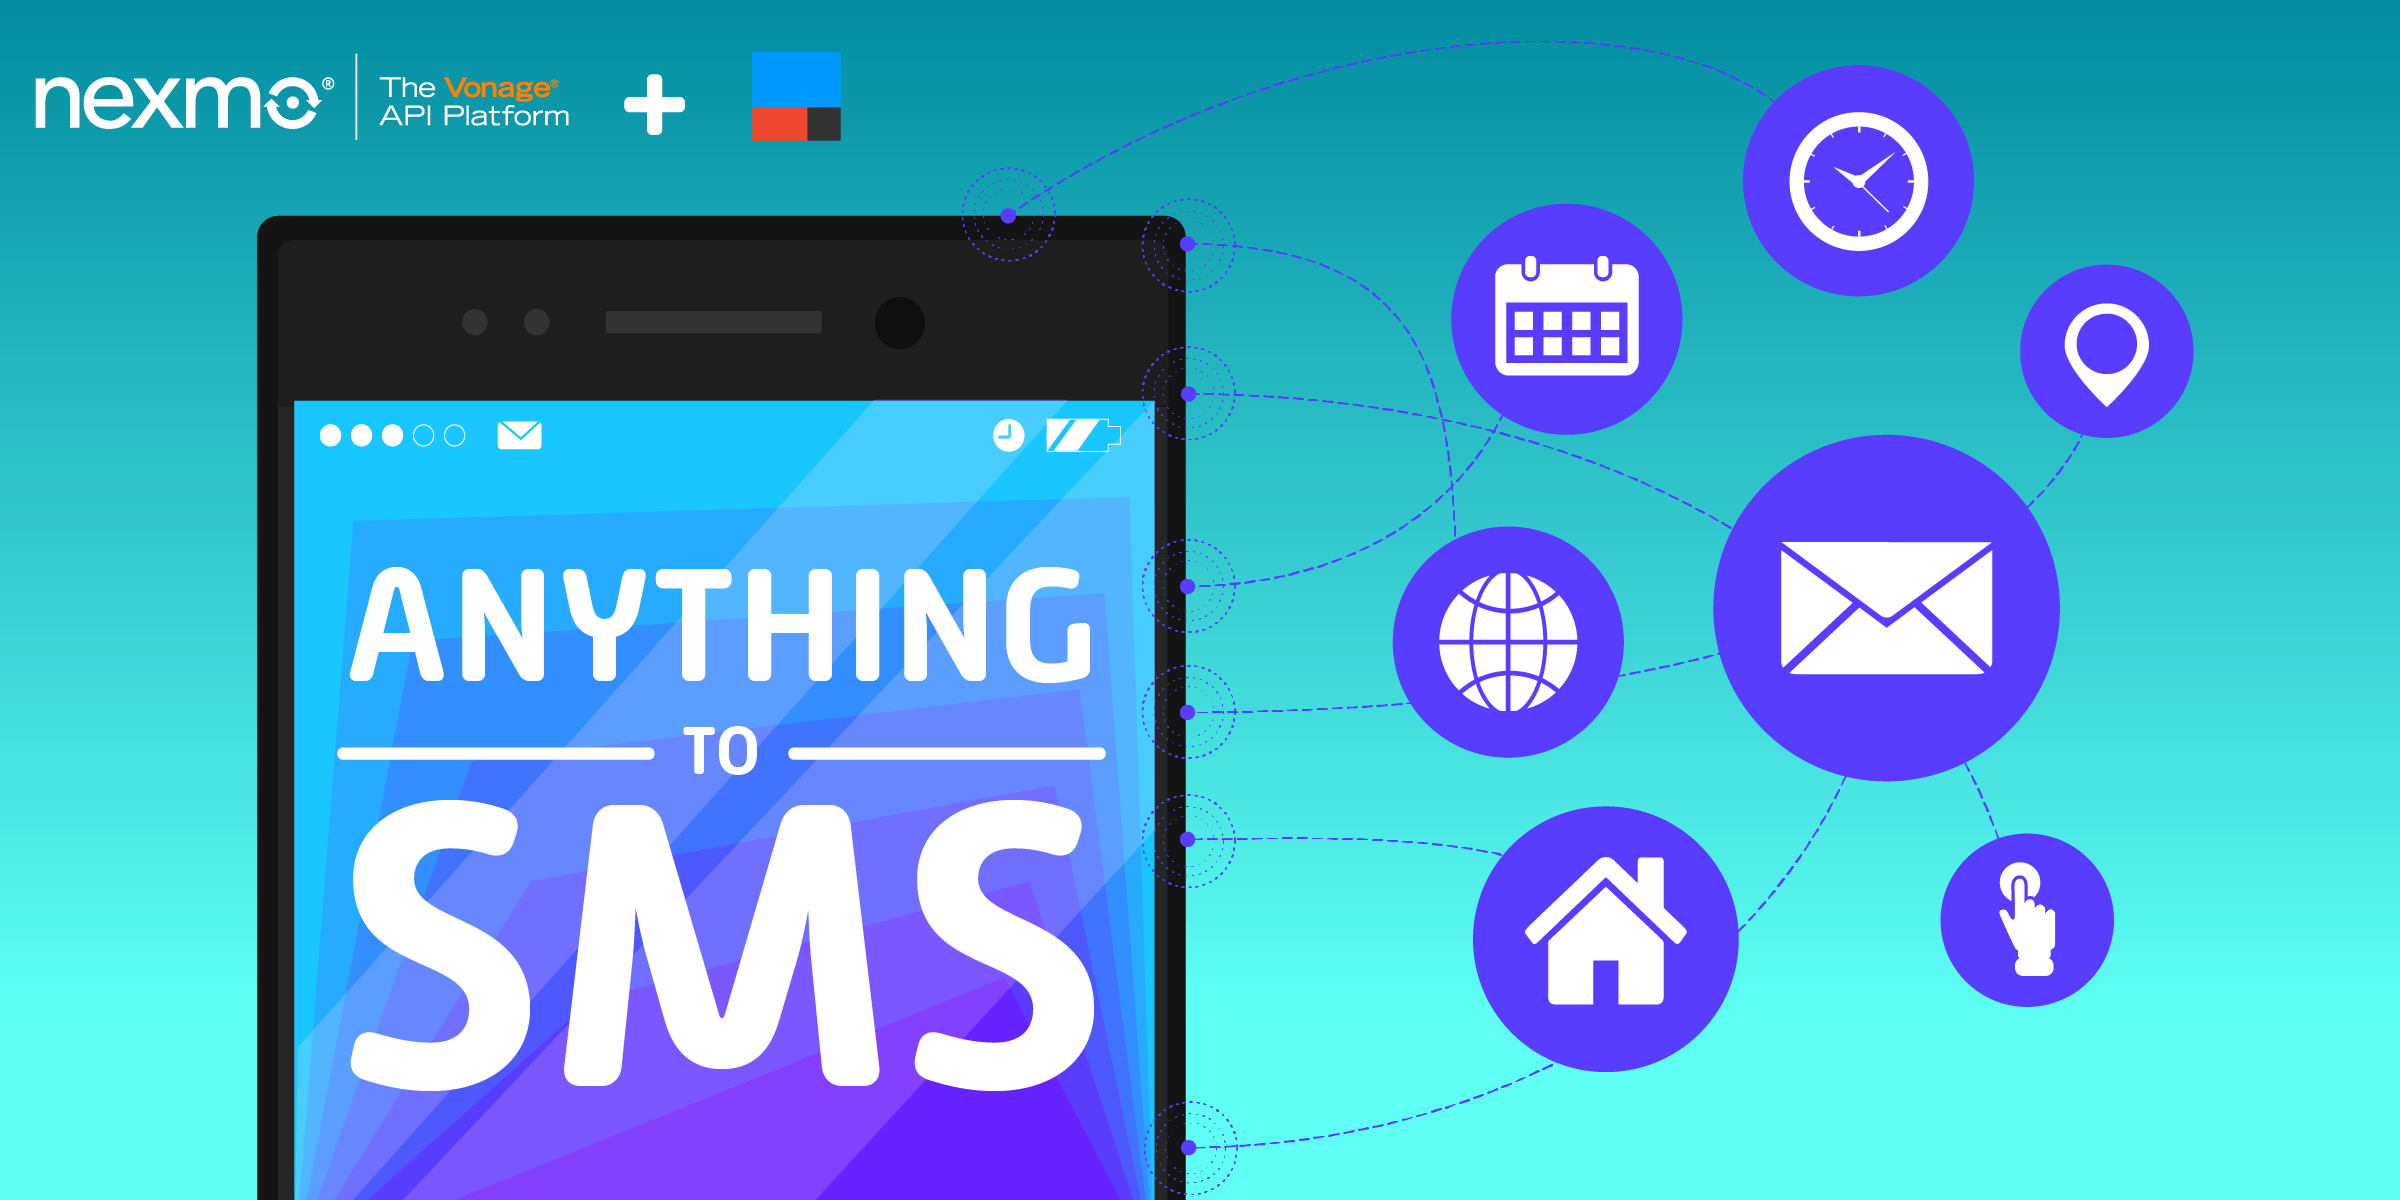 Anything-to-SMS with IFTTT and Nexmo